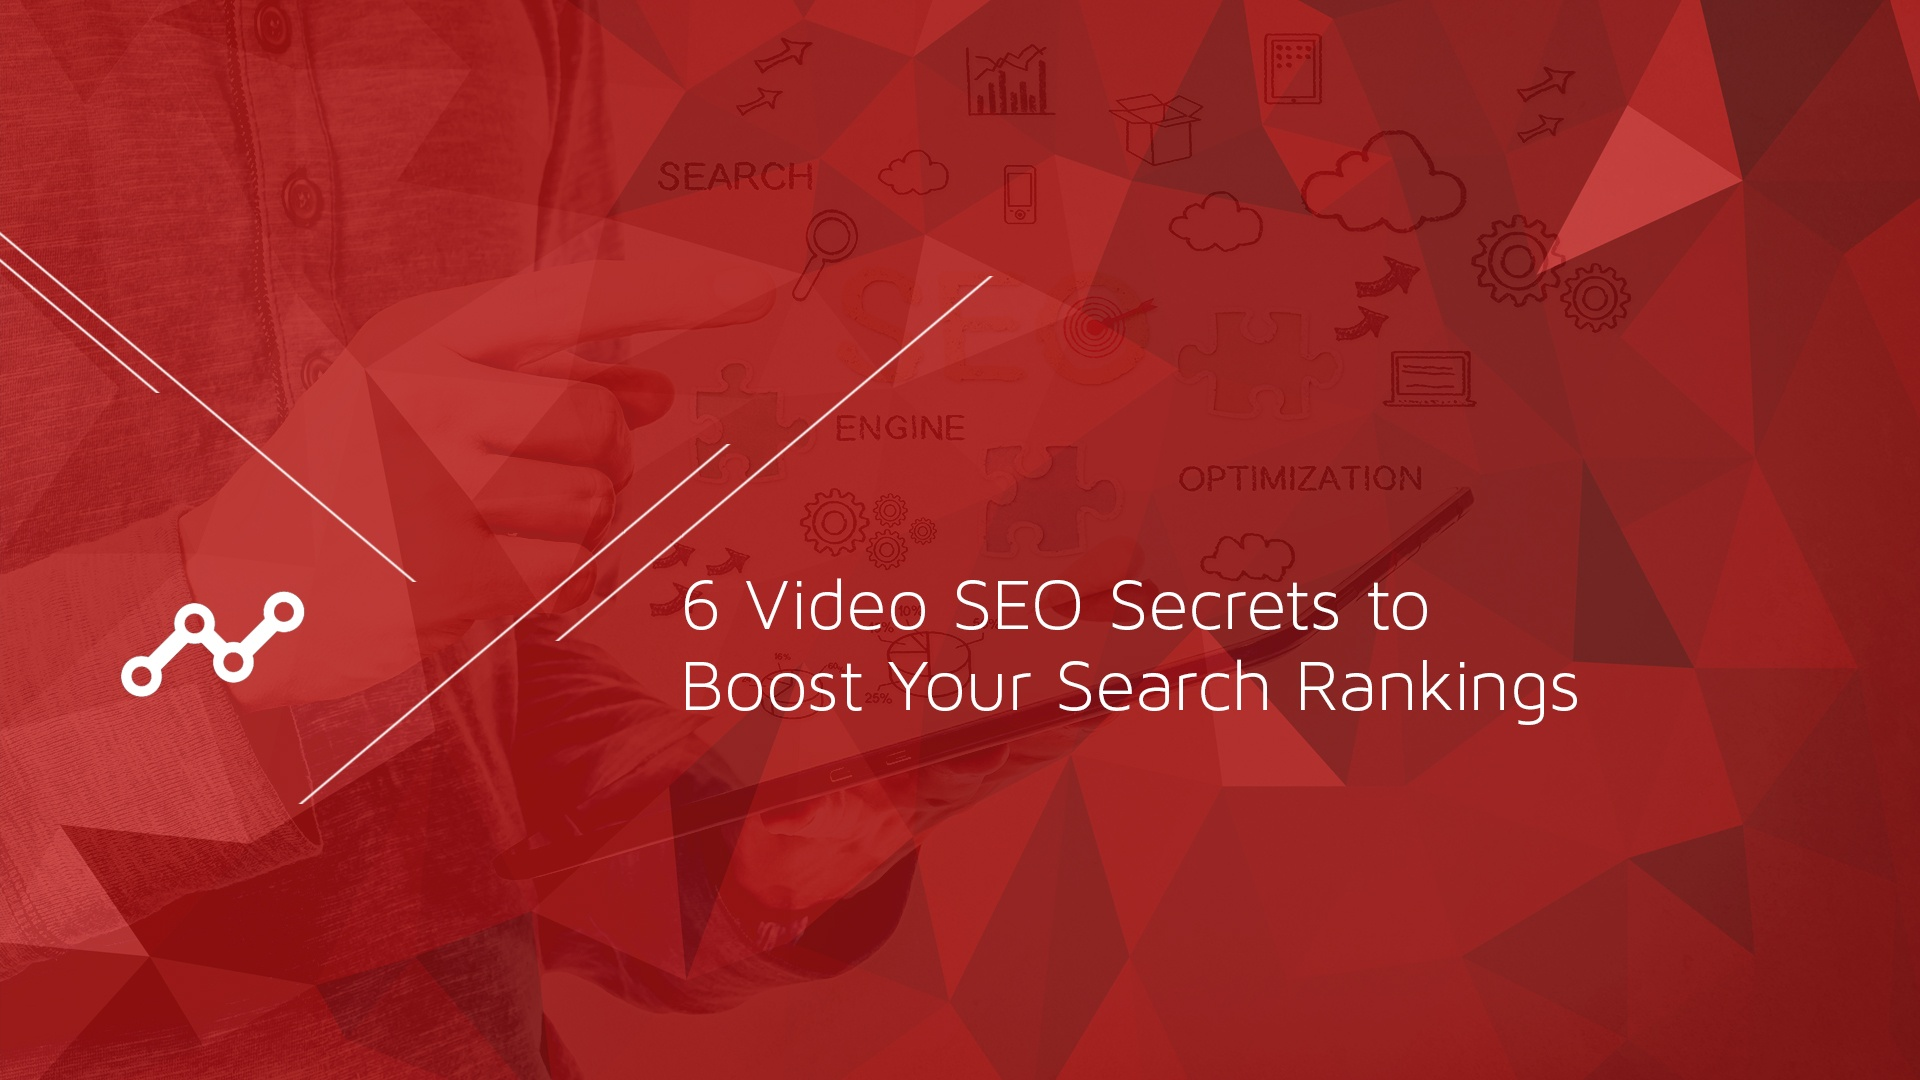 1 - 6 Video SEO Secrets to Boost Your Search Rankings-1.jpg